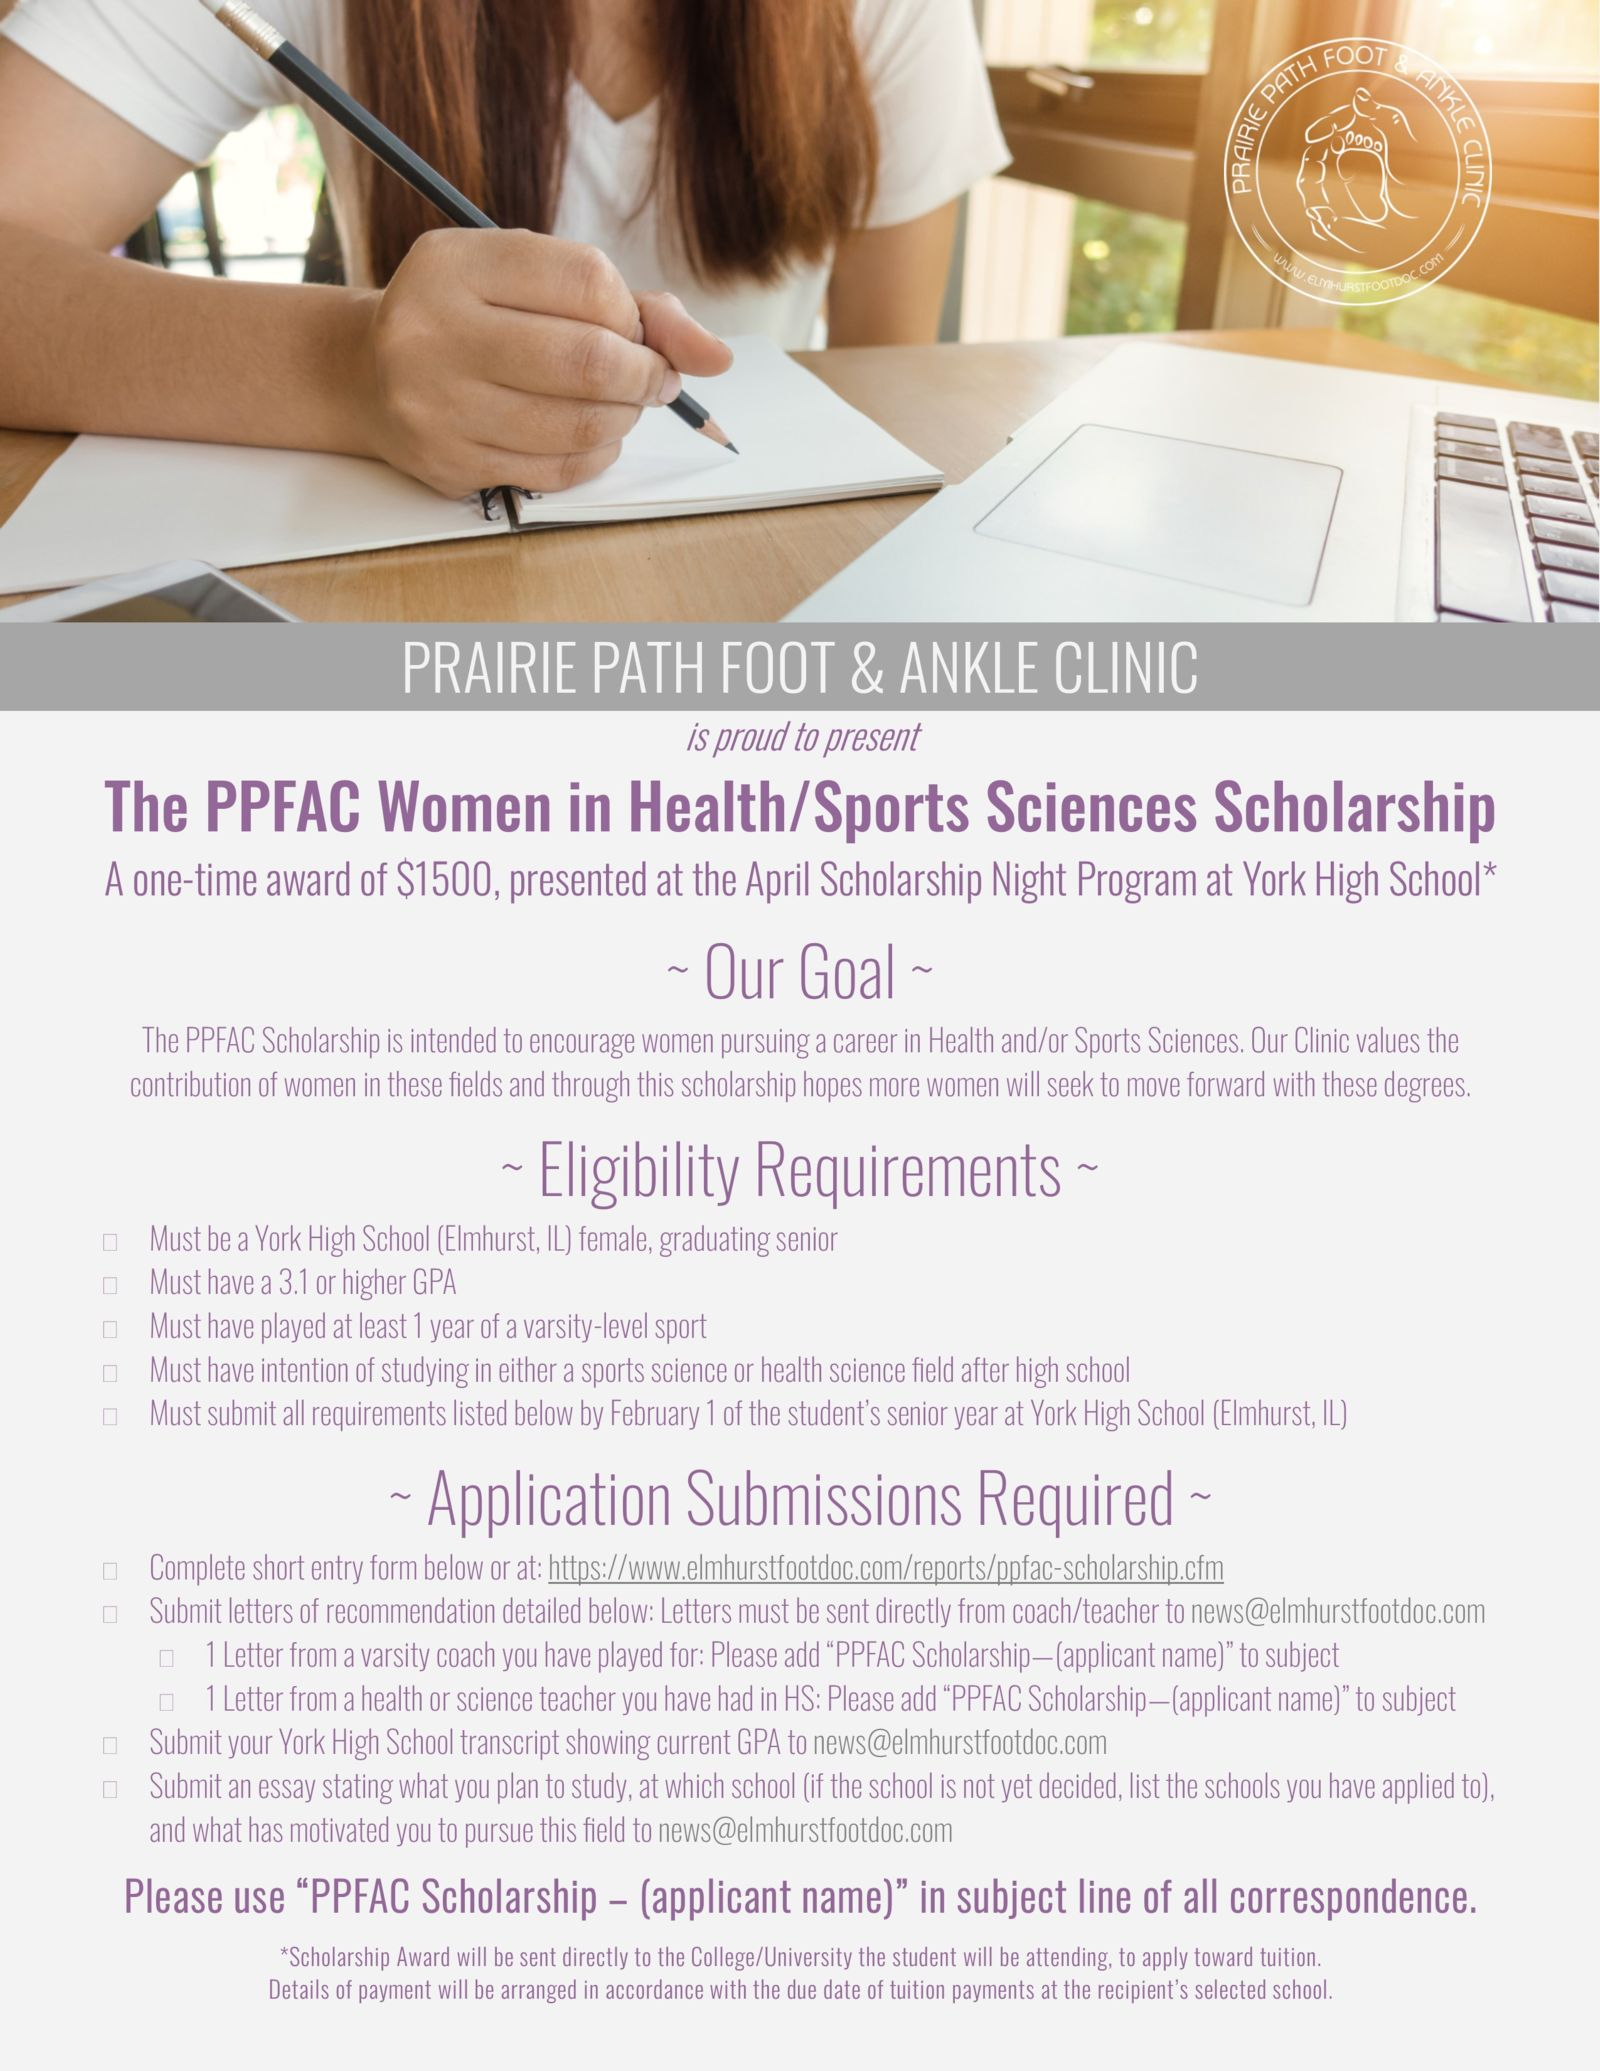 PPFAC Scholarship Application Details and a picture of a girl studying